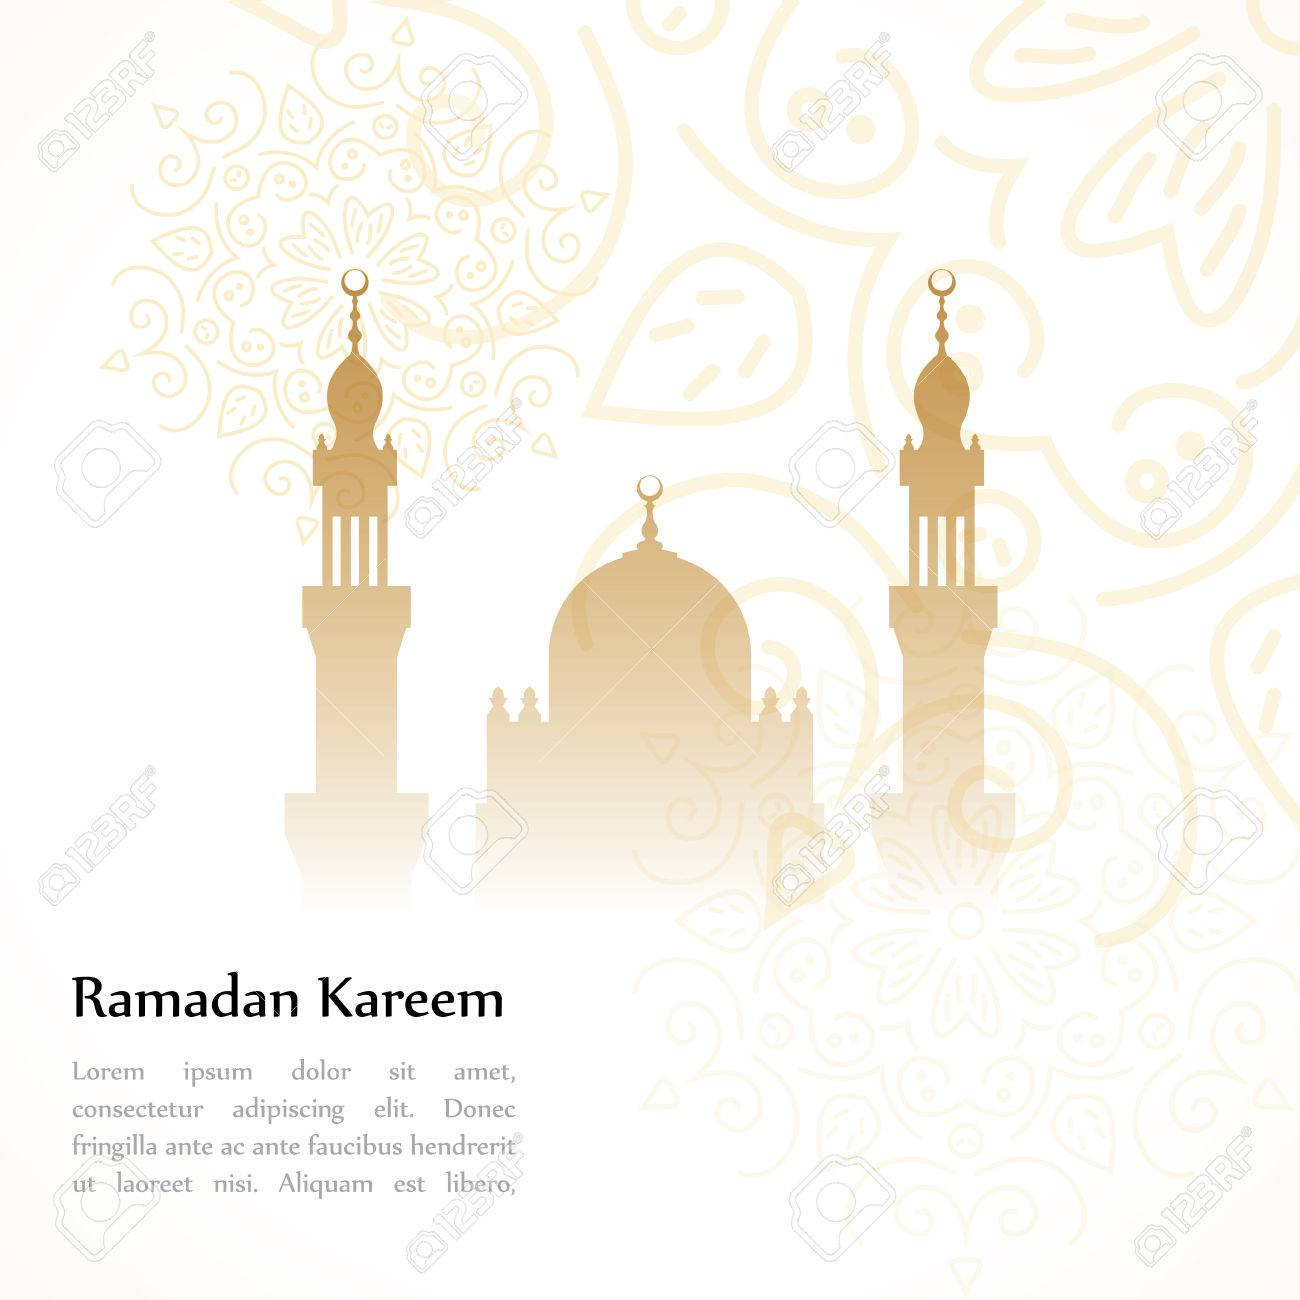 Ramadan greetings postcard with the image of the mosque ramadan ramadan greetings postcard with the image of the mosque ramadan kareem means generous month of kristyandbryce Images